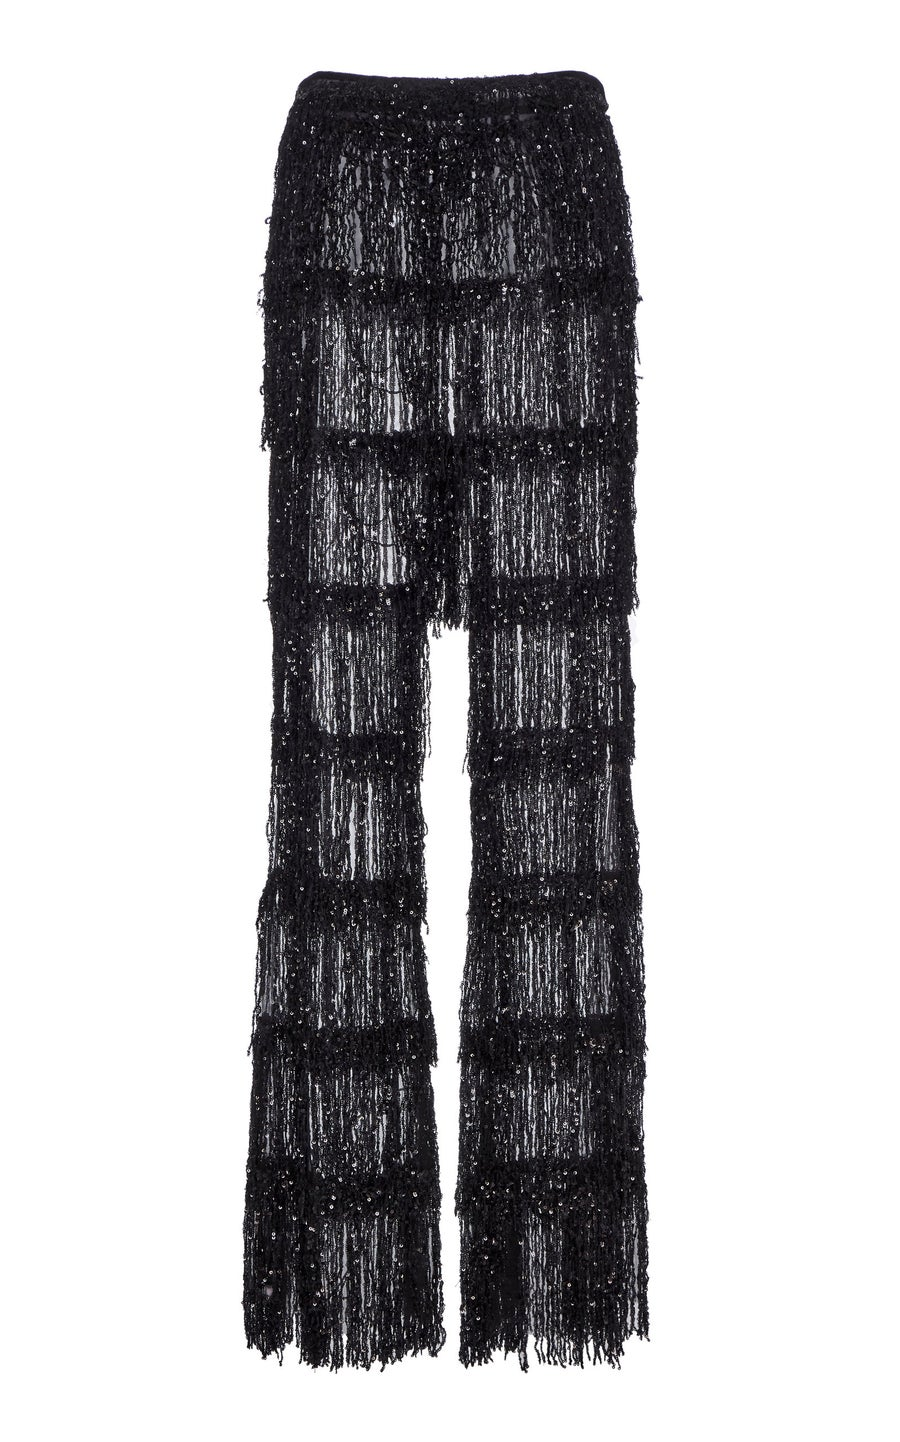 Image of Black Sequin Fringe Flare Trouser